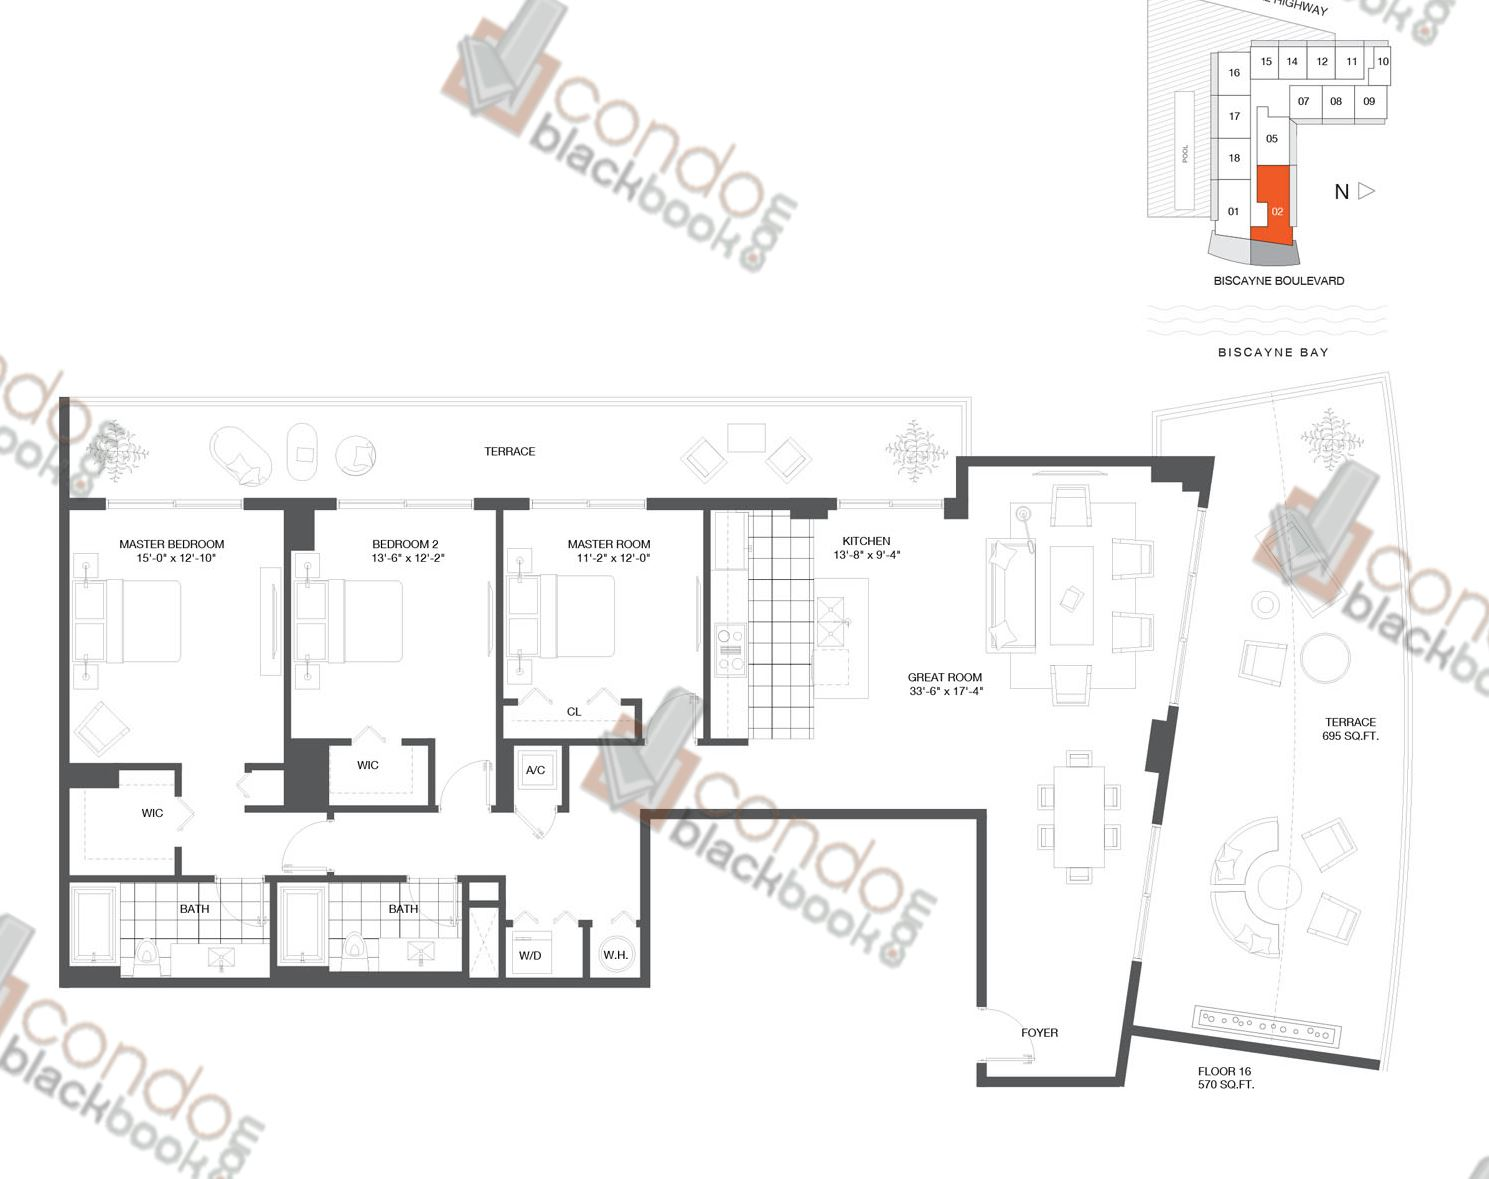 Floor plan for Baltus House Design District / Buena Vista Miami, model Residence 02, line 02, 3/2 bedrooms, 1,782 sq ft